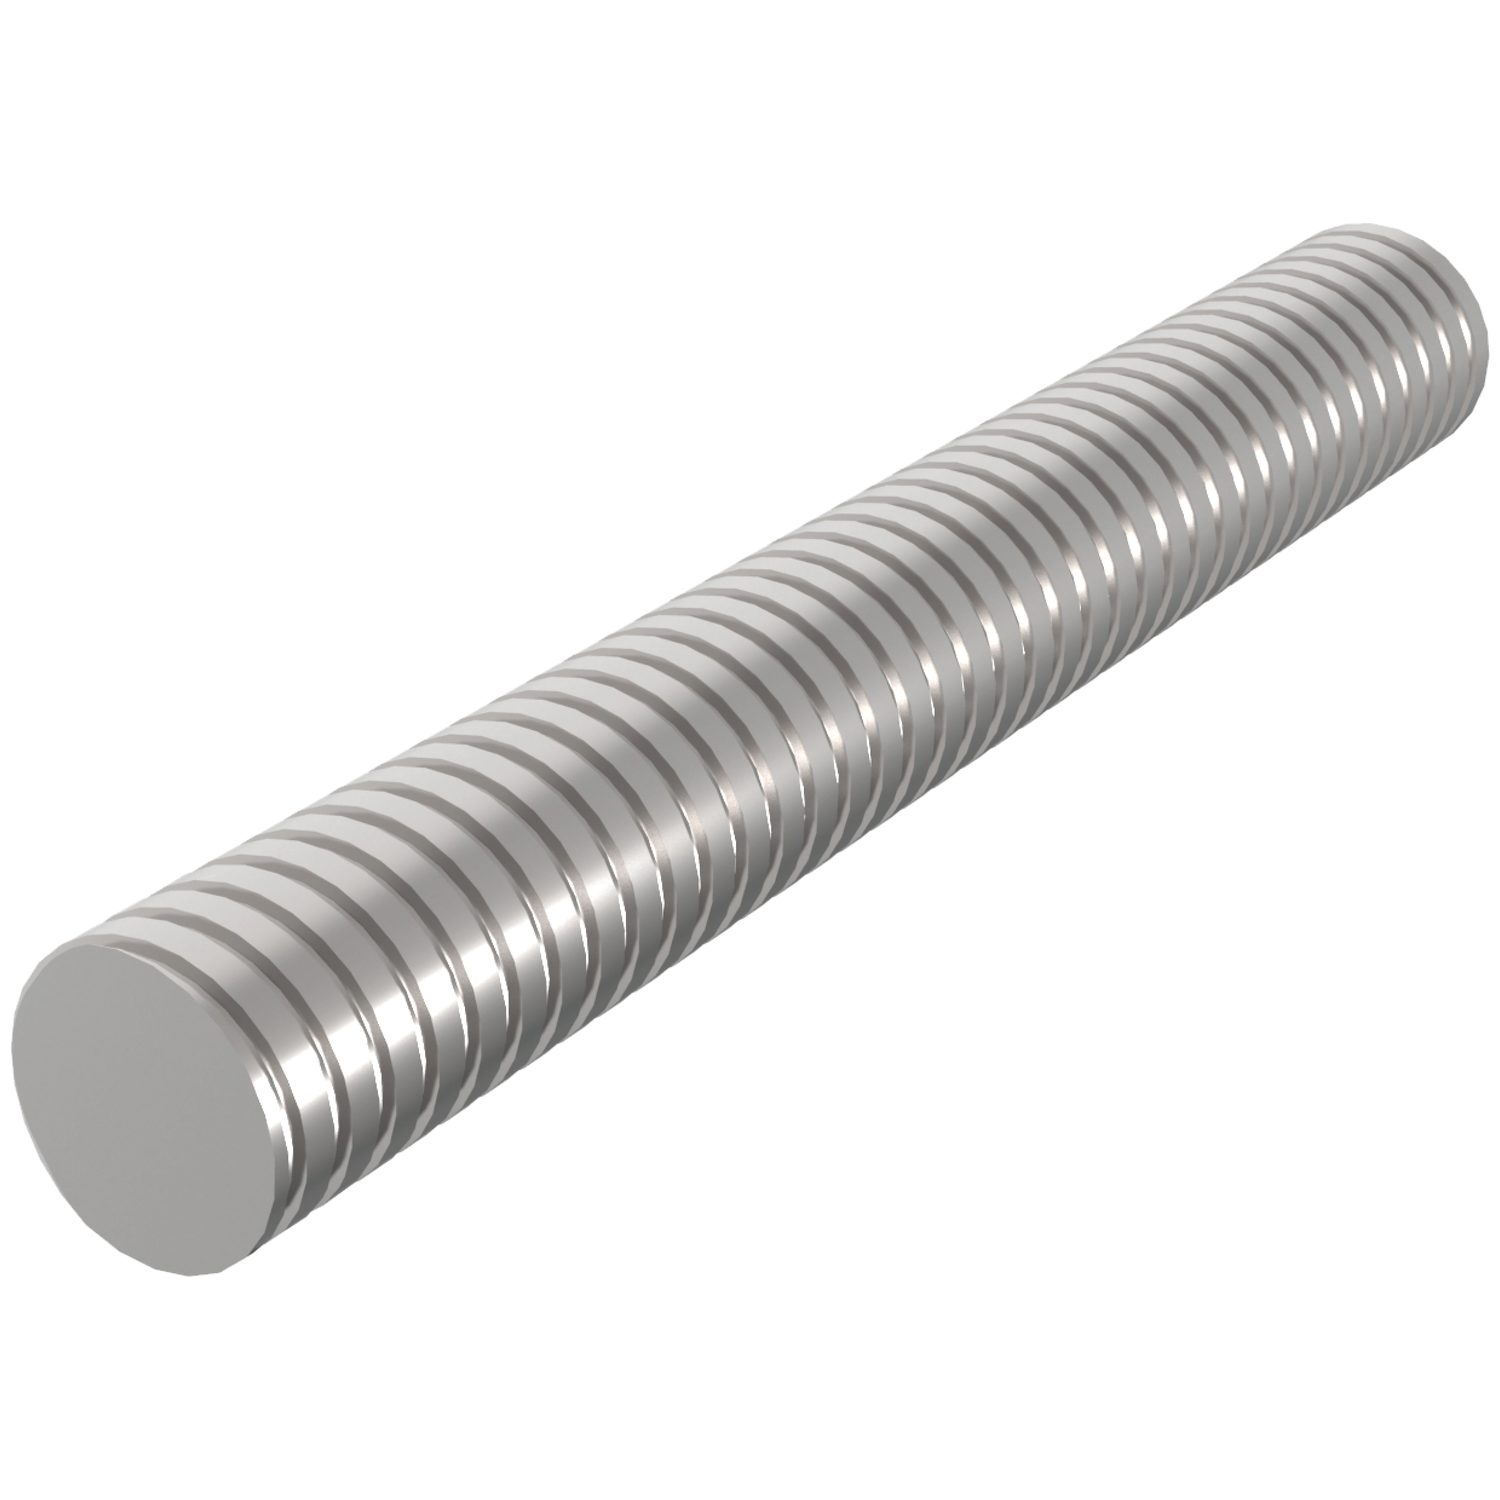 Product L1322, Stainless Lead Screws right hand thread /